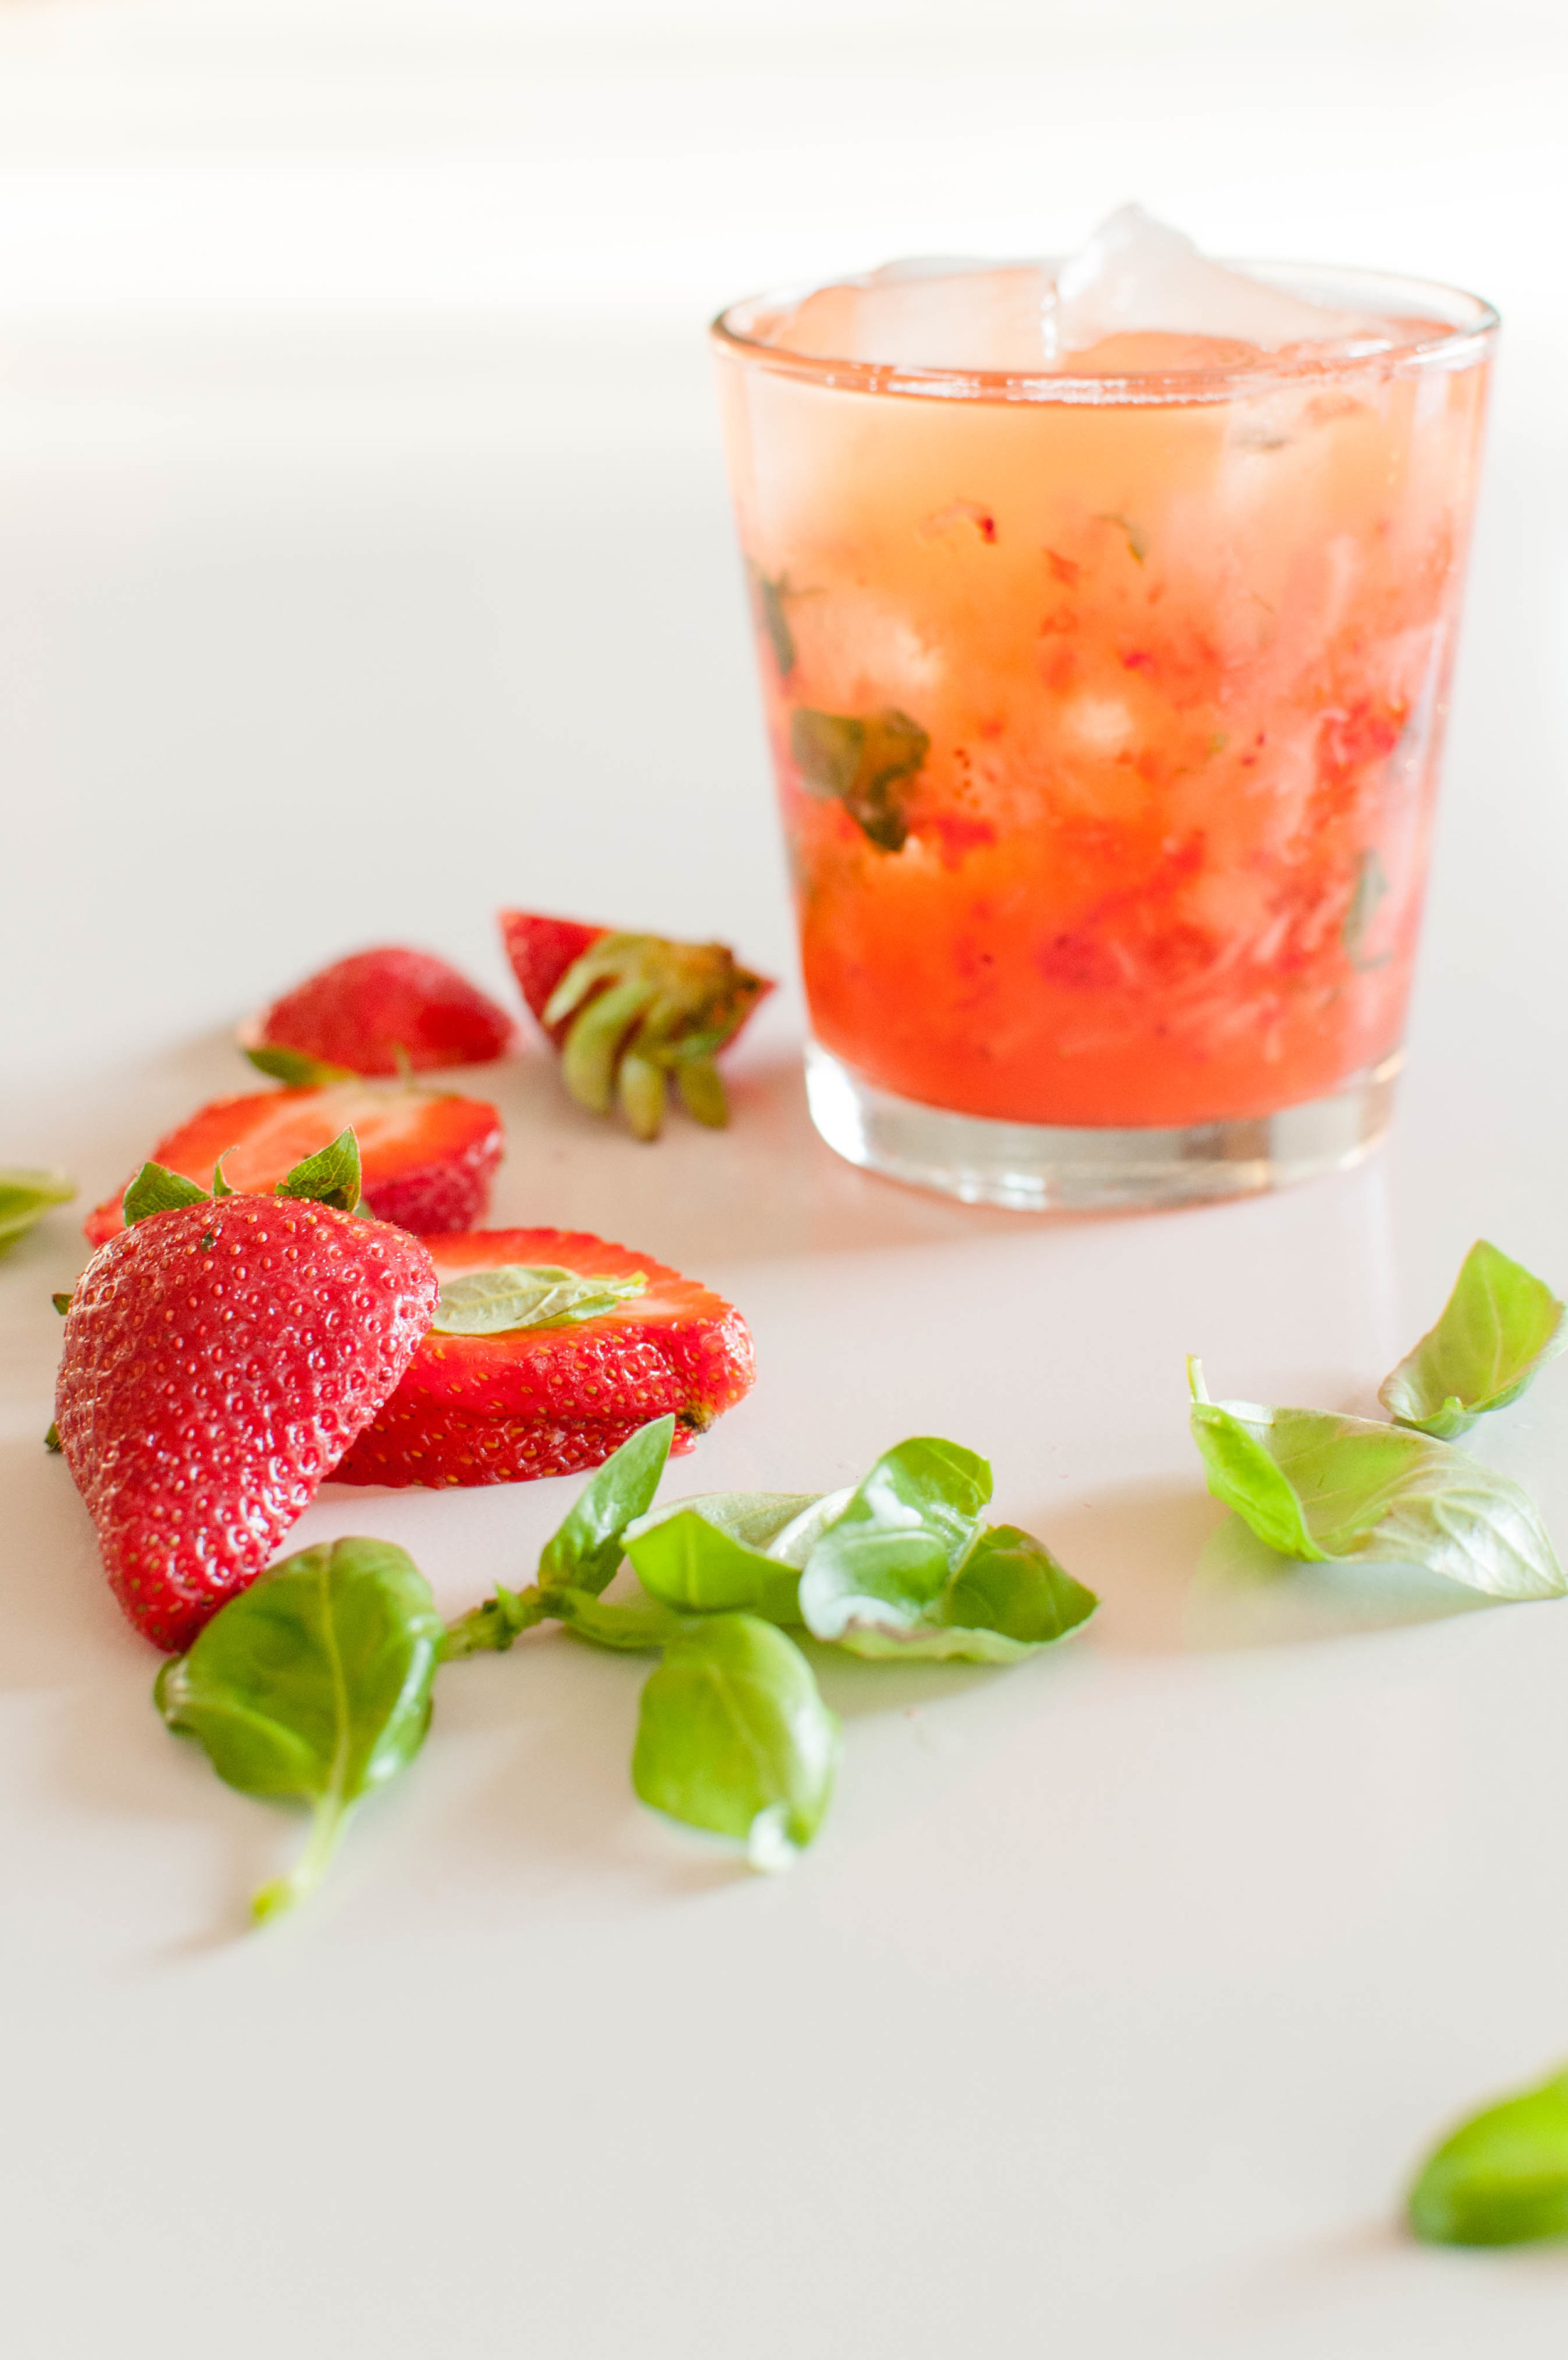 Skinny-love-strawberry-basil-margarita.jpg